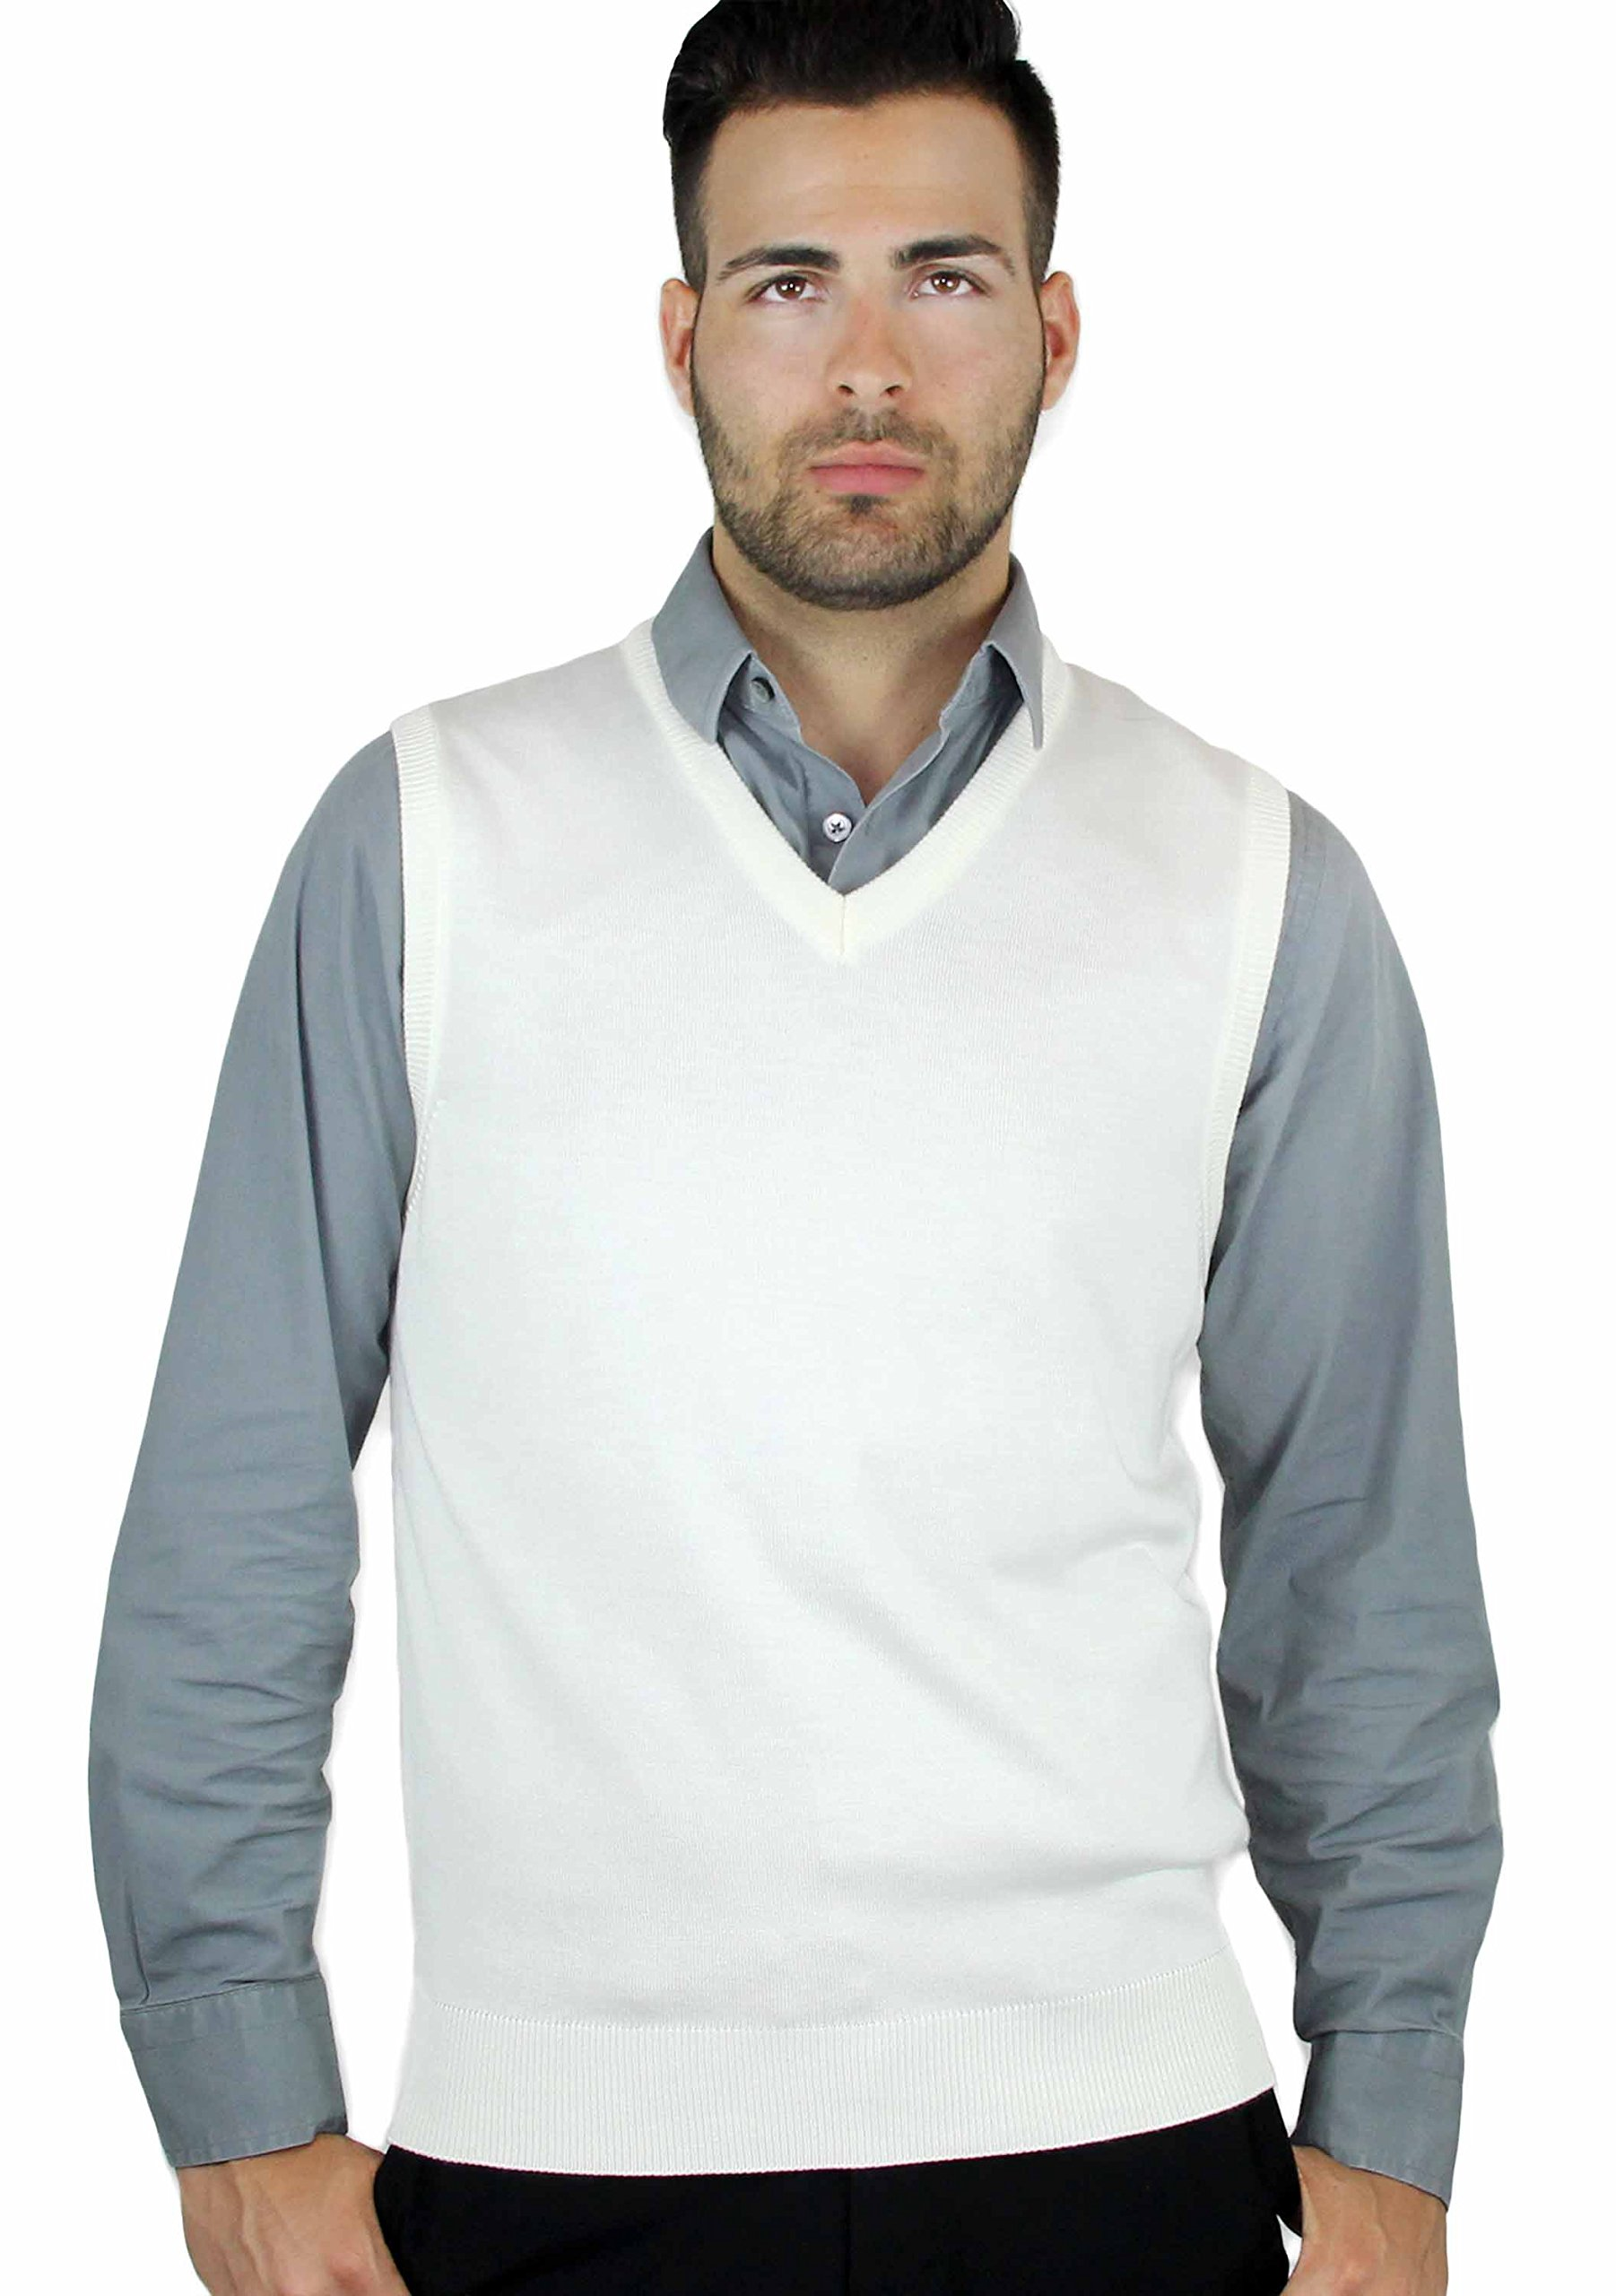 Blue Ocean Solid Color Sweater Vest Off-white Small by Blue Ocean